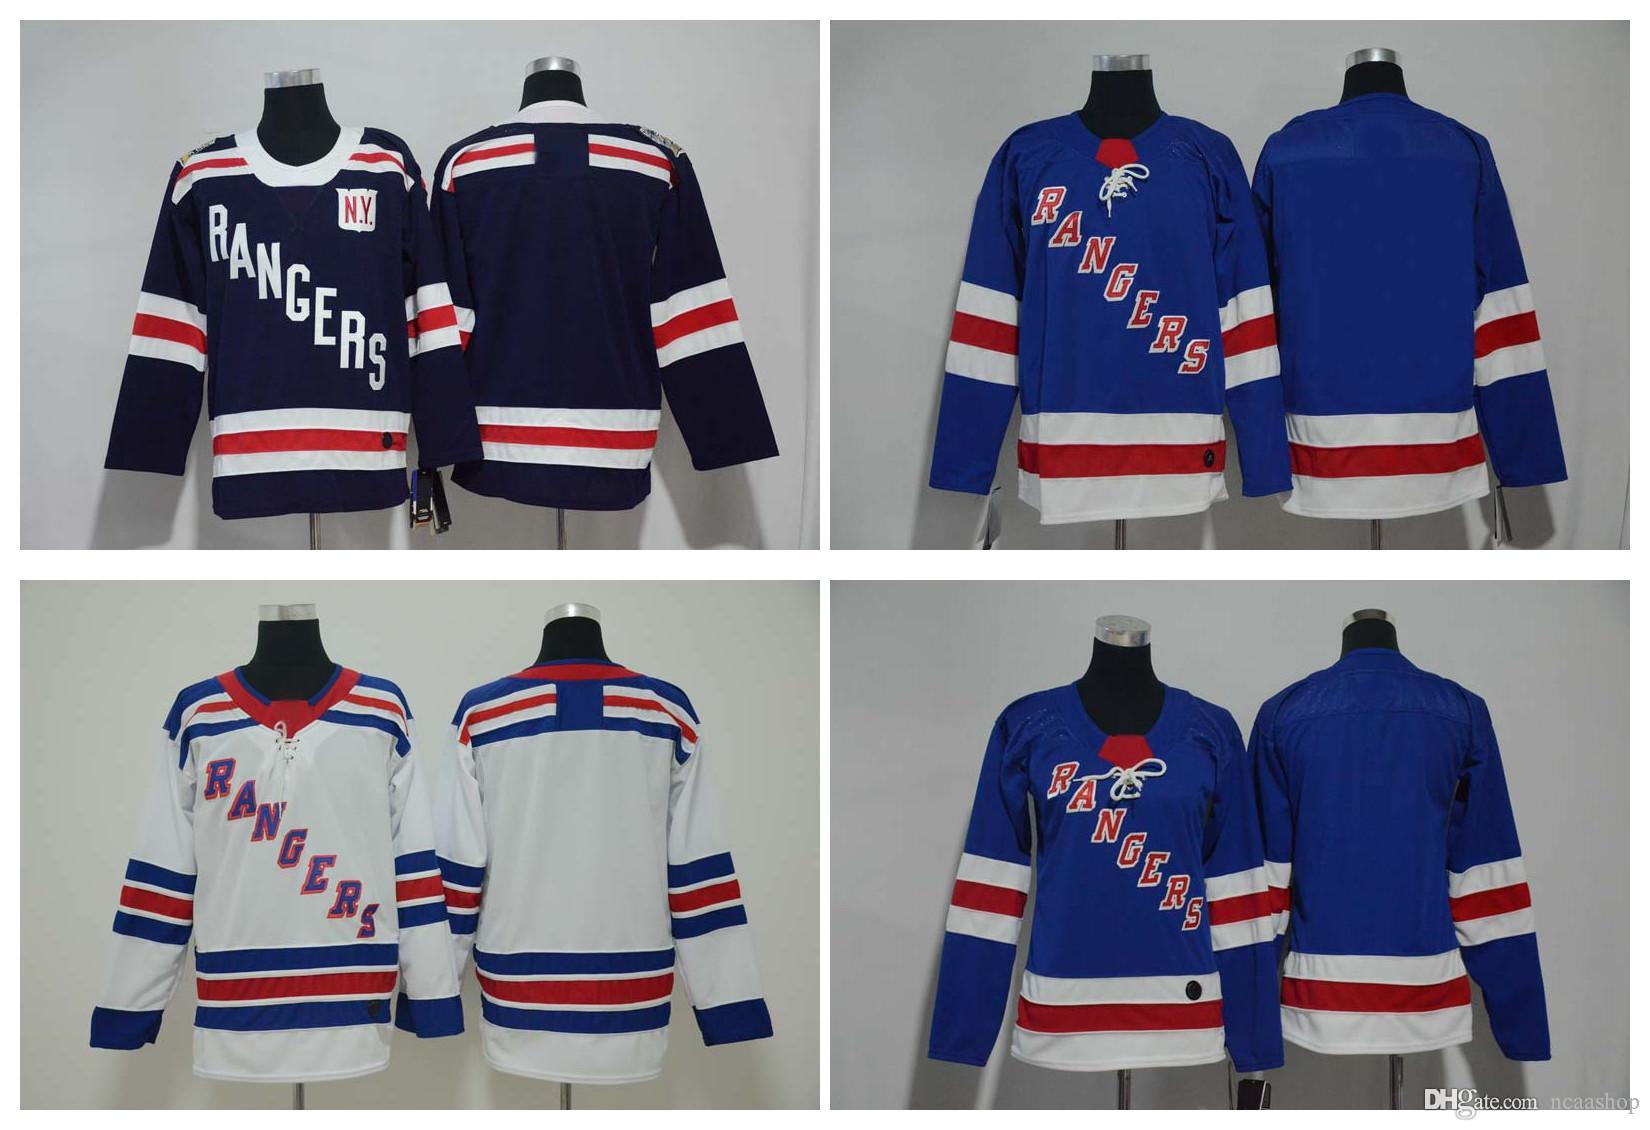 newest 769aa 6d38c 2019 Winter Classic New York Rangers Jersey Men Kids Women Blank No Name  Number White Blue Stitched Hockey Jersey